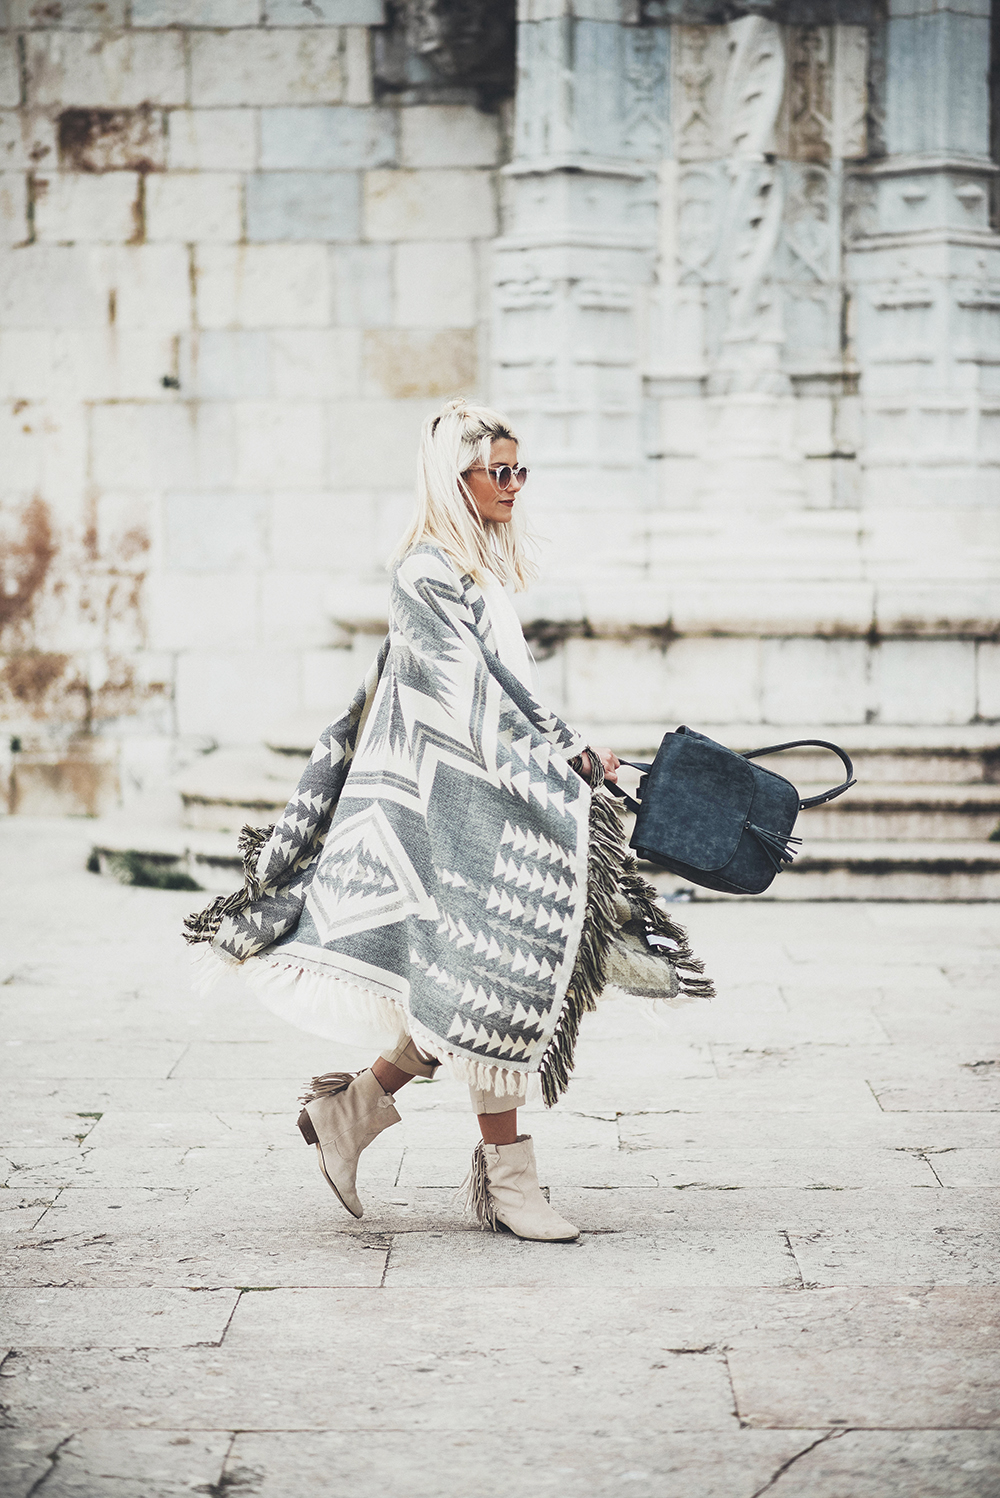 An Aztec style poncho is the ultimate festival must-have. Barbara Ines is looking super bohemian in this oversized grey and white piece, worn with cowboy style frayed boots and a leather satchel. We love this look! Poncho: Berskha, Bag: Mariosca, Boots: Zara.